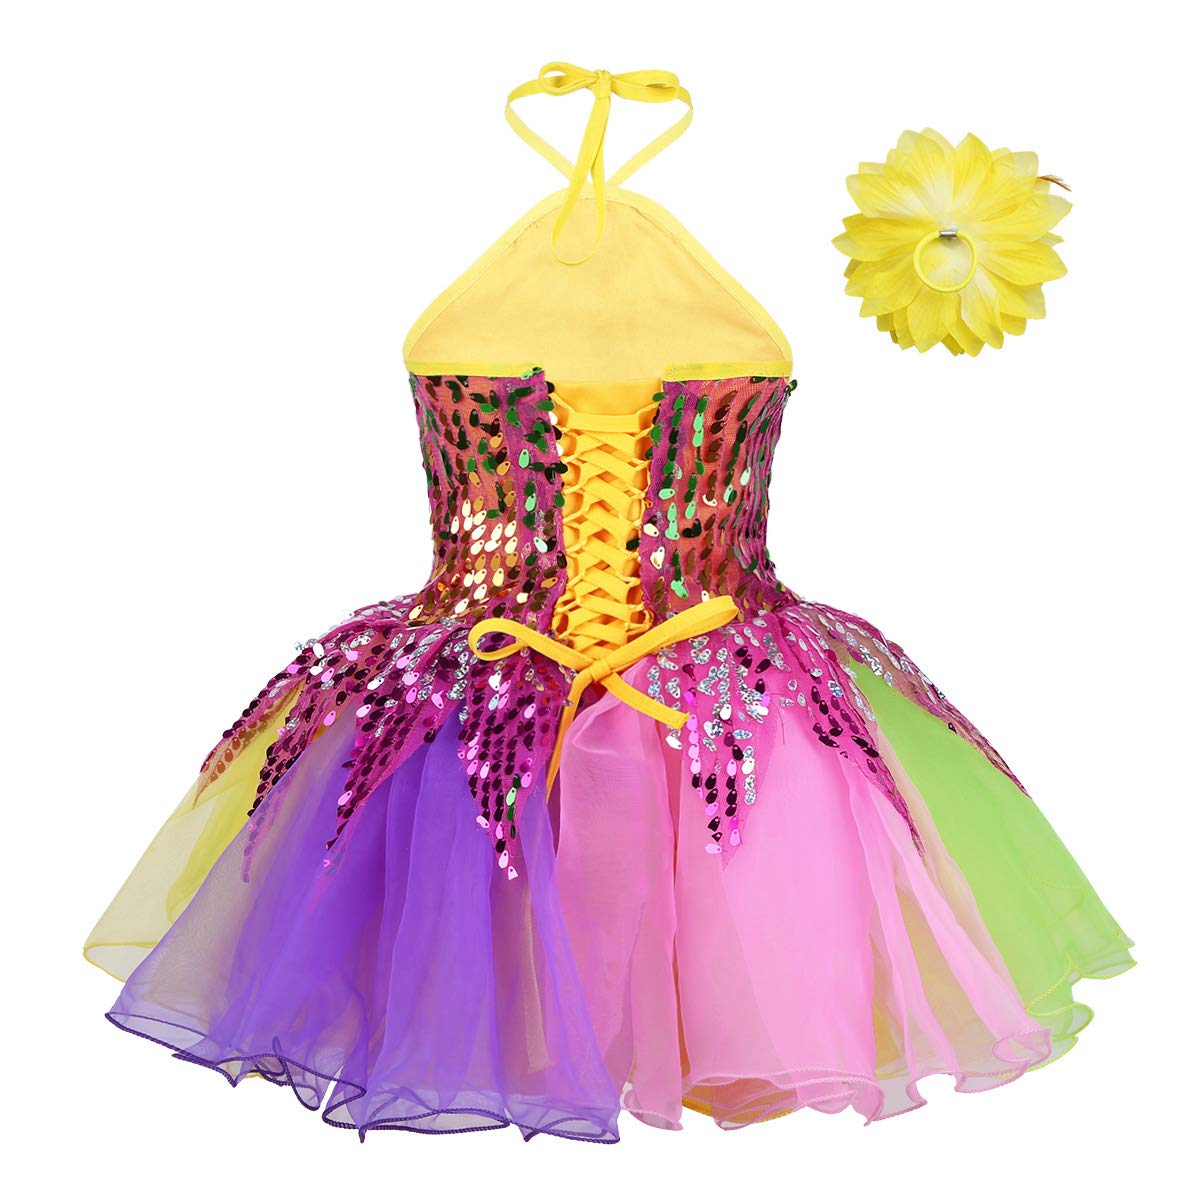 iEFiEL Kids Girls Shiny Sequined Pastel Mesh Tutu Dress Jazz Modern Dance Stage Performance Dancing Costumes Blue/&Rose Red 3-4 Years